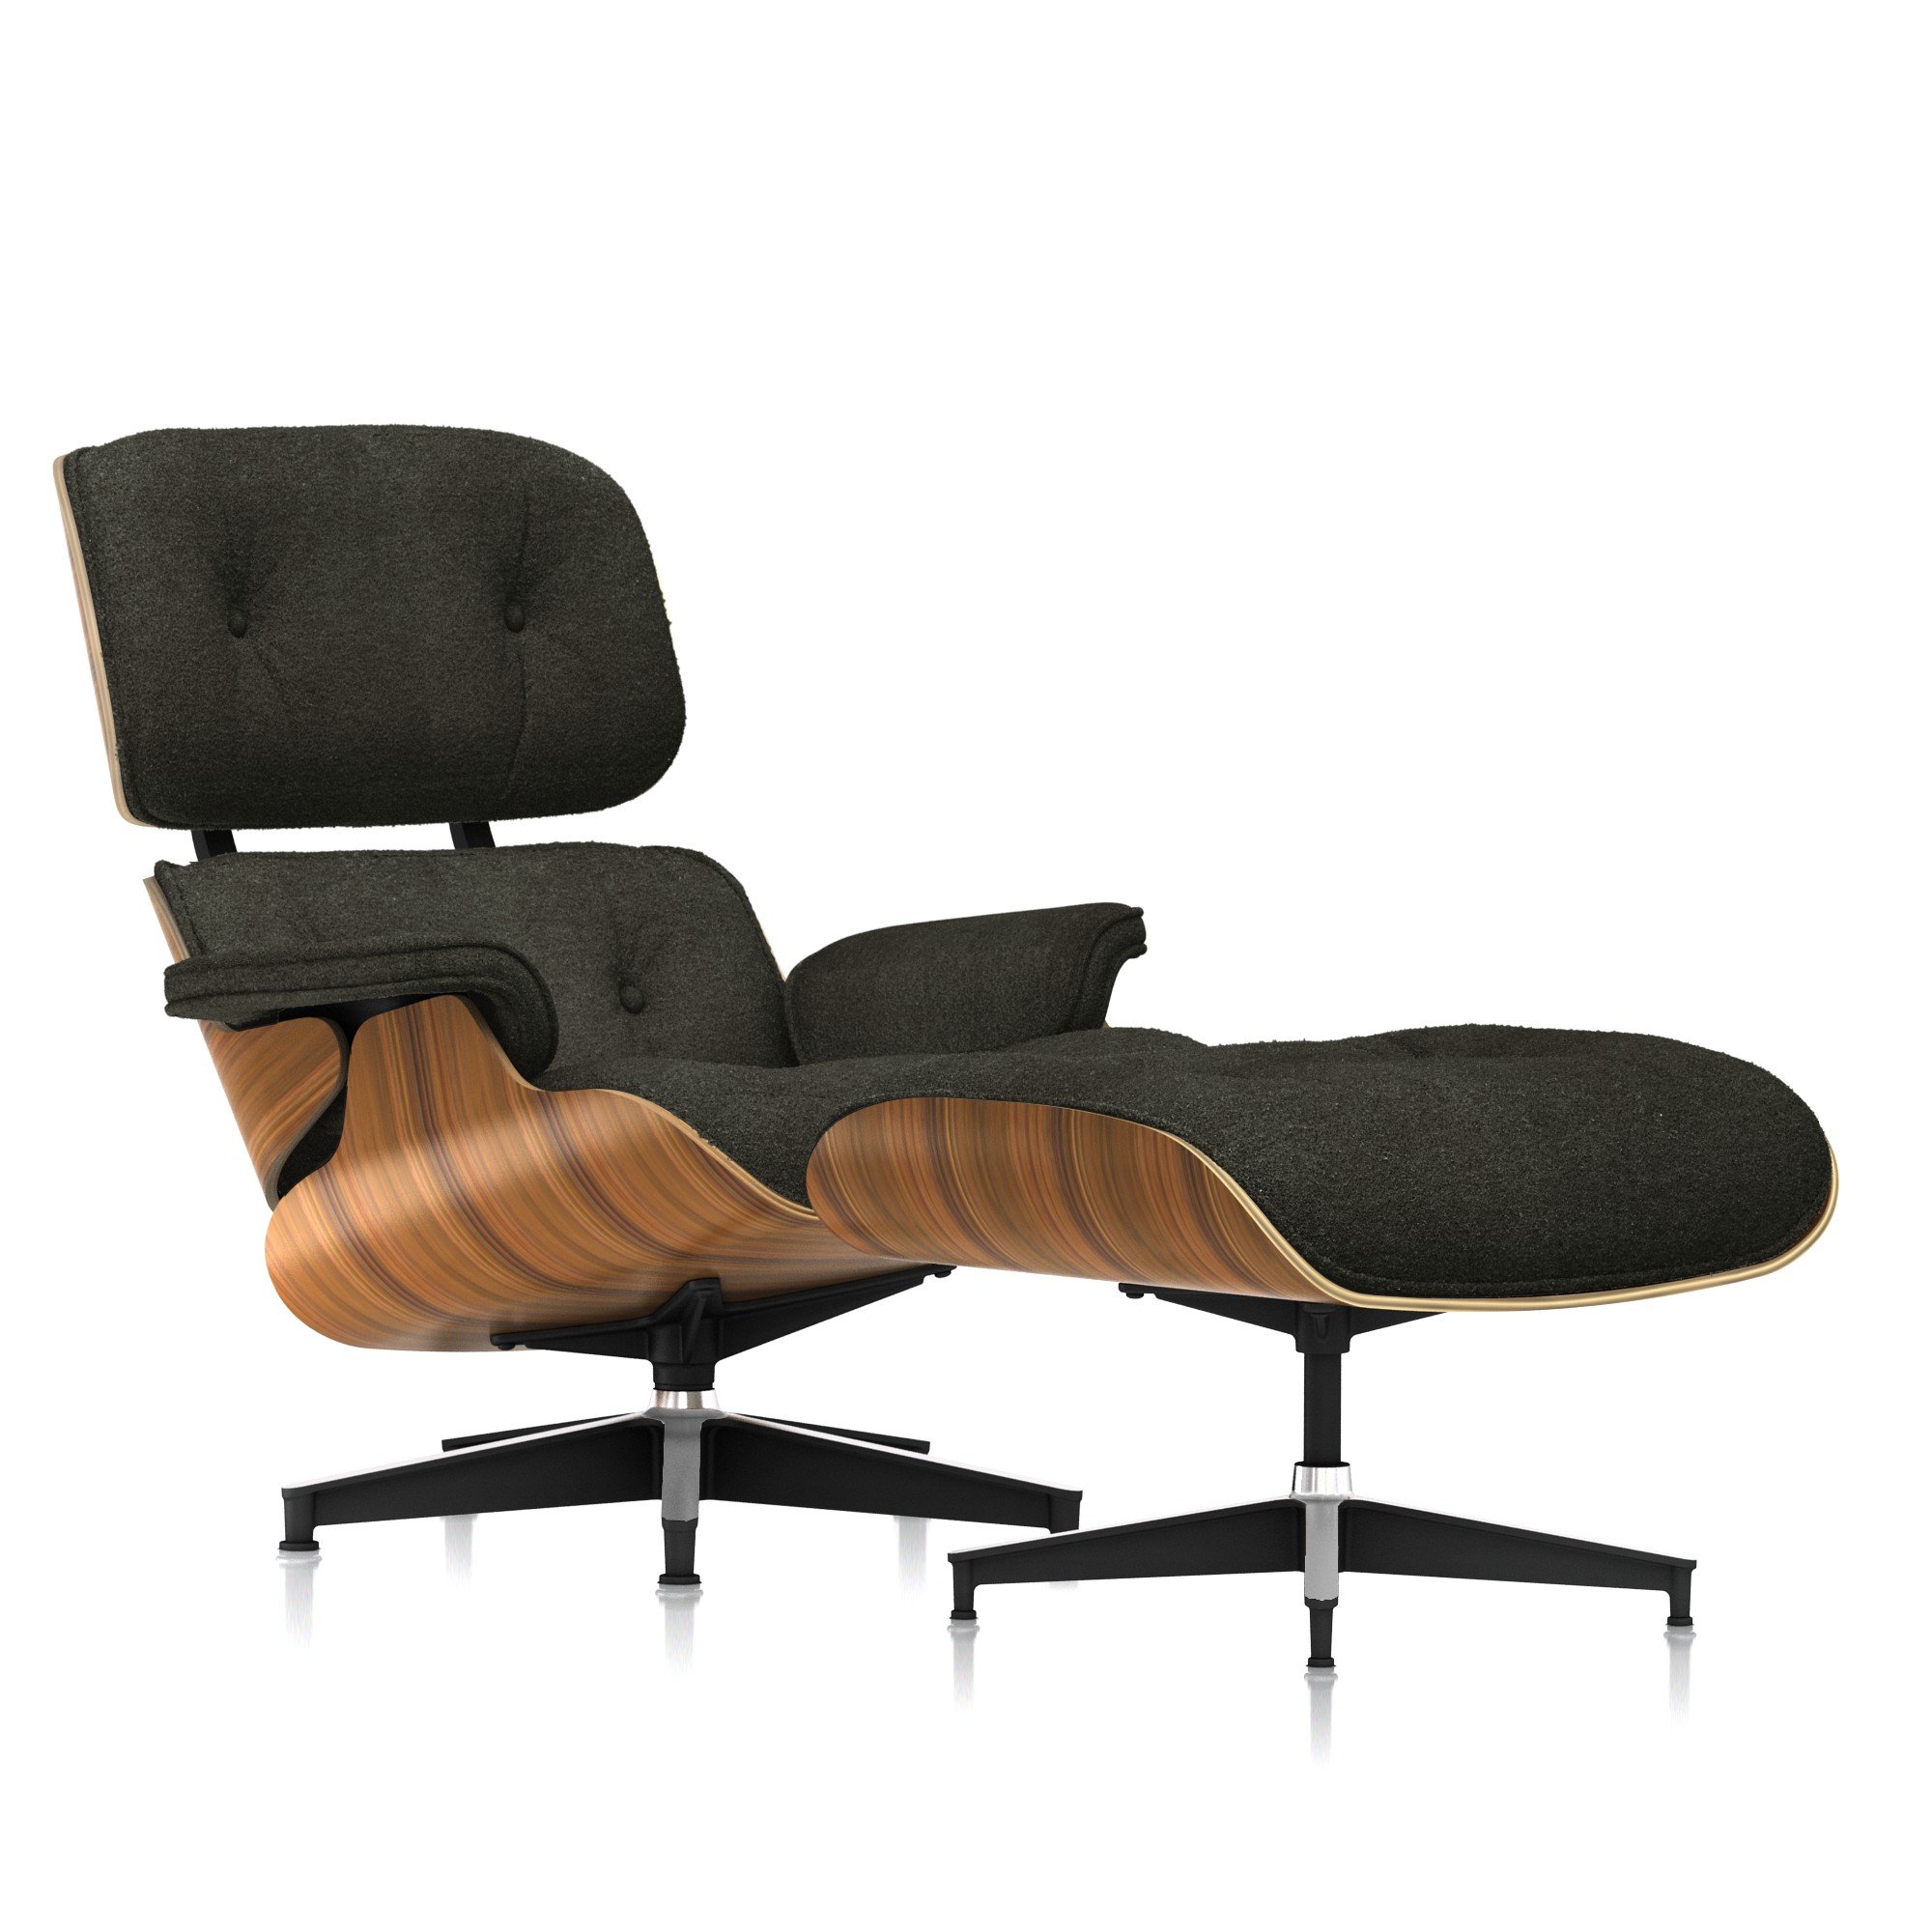 Eames Lounge Chair and Ottoman in Armory Mohair Supreme Tall by Herman Miller